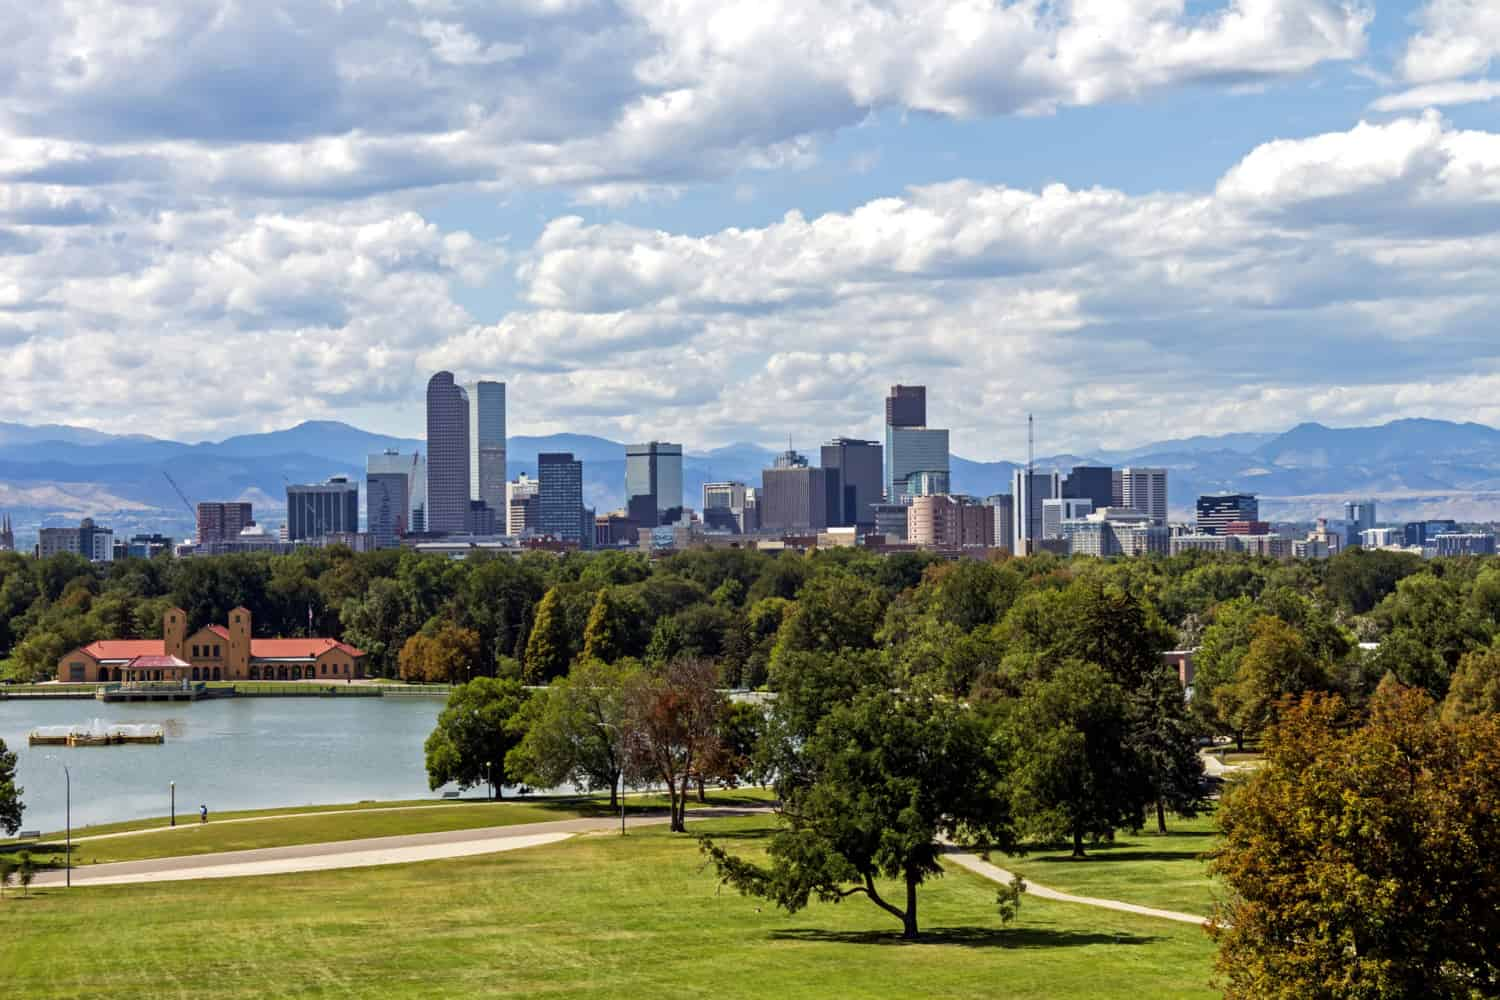 Denver, Colorado skyline a beautiful park on a lovely autumn day